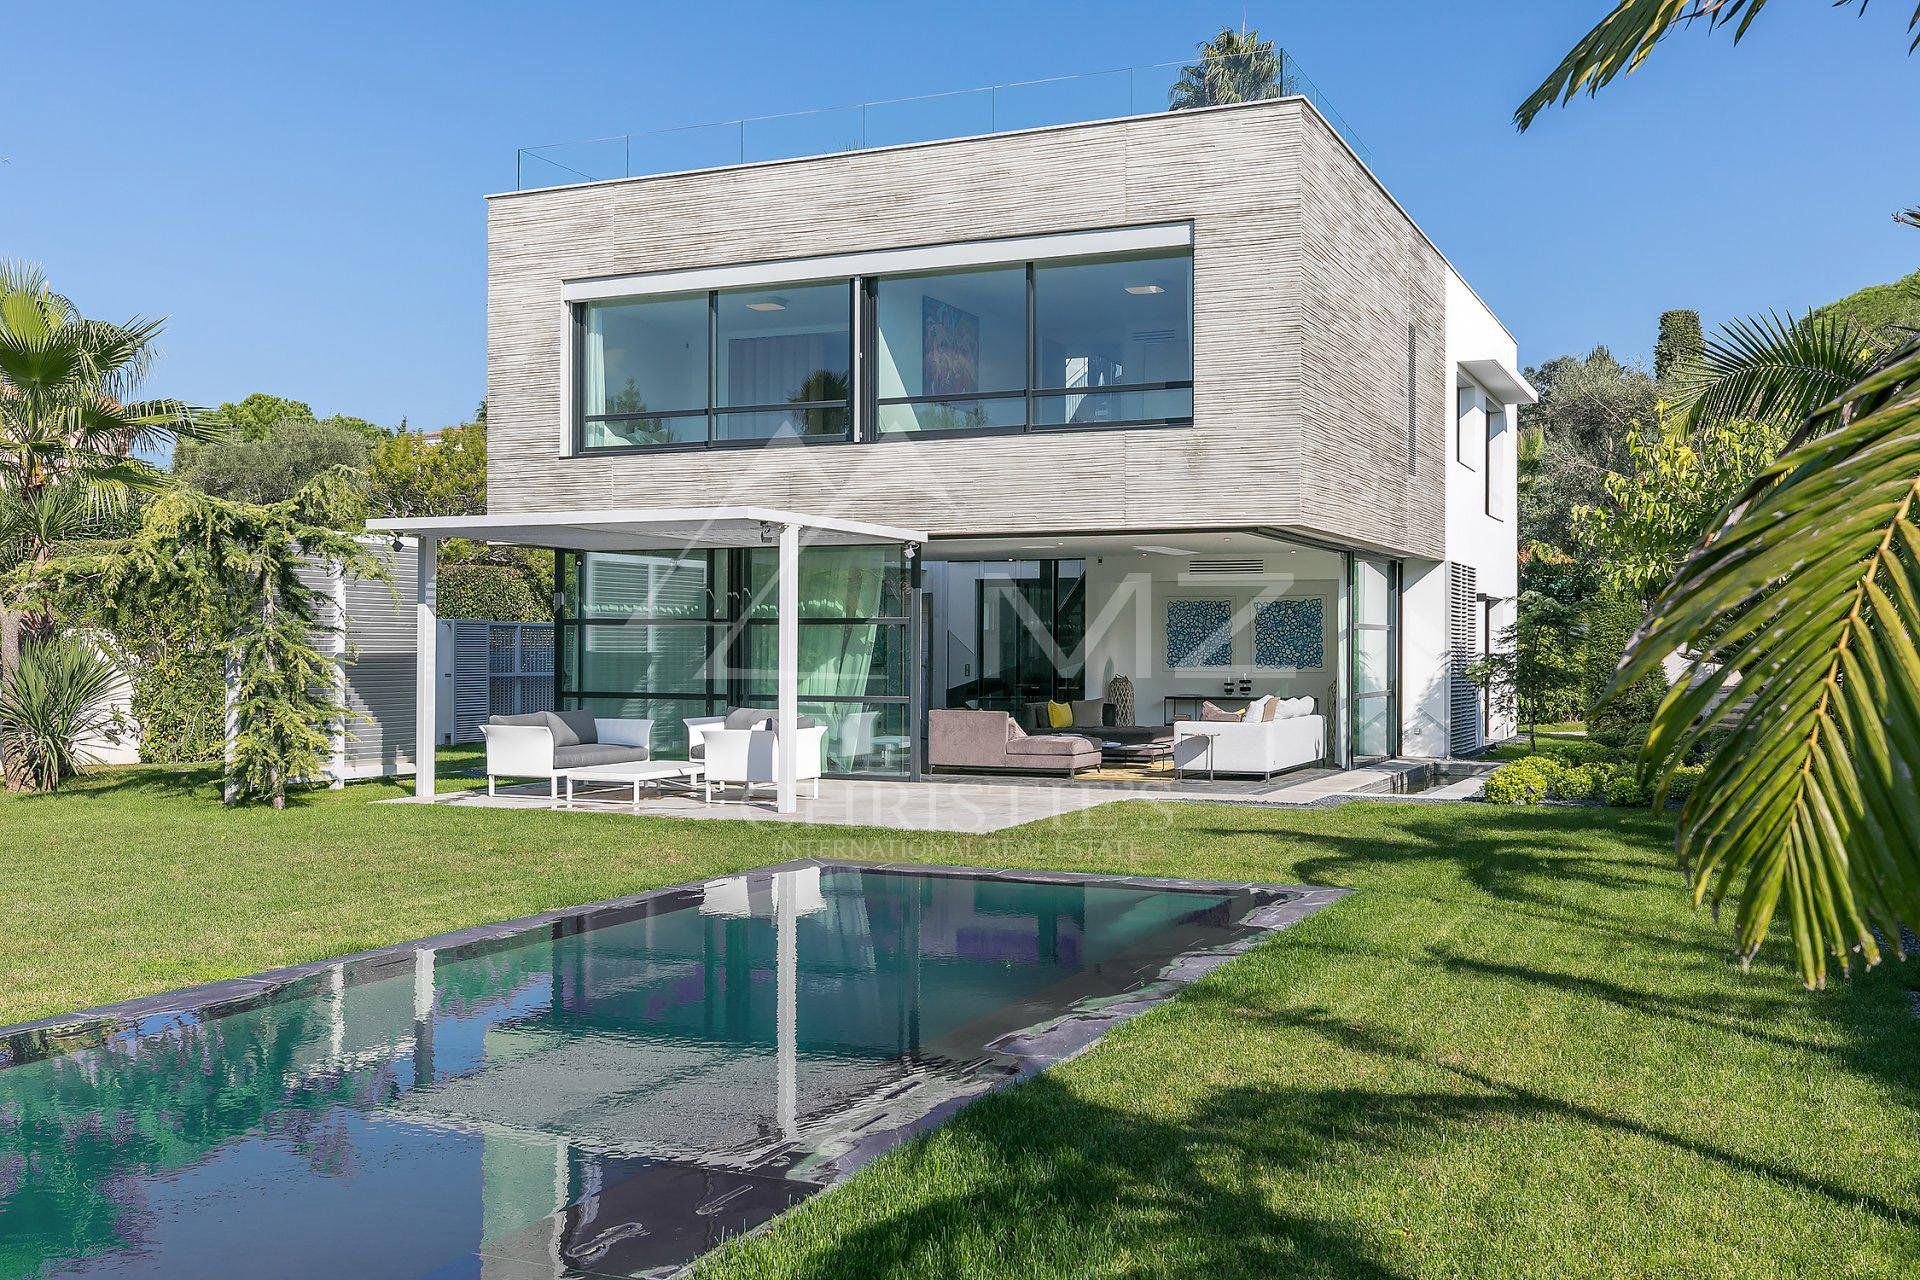 Elegant contemporary villa for sale in Cap d'Antibes, a few minutes from the beaches. Offering luxury design and amenities, this property benefits of a swimming pool, a roof terrace, and its own gym and home cinema. MZICP498 #Sale #CapdAntibes #FrenchRiviera #LuxuryRealEstate #LuxuryHomes #Contemporary #Property #RoofTop #Gym #HomeCinema #SwimmingPool